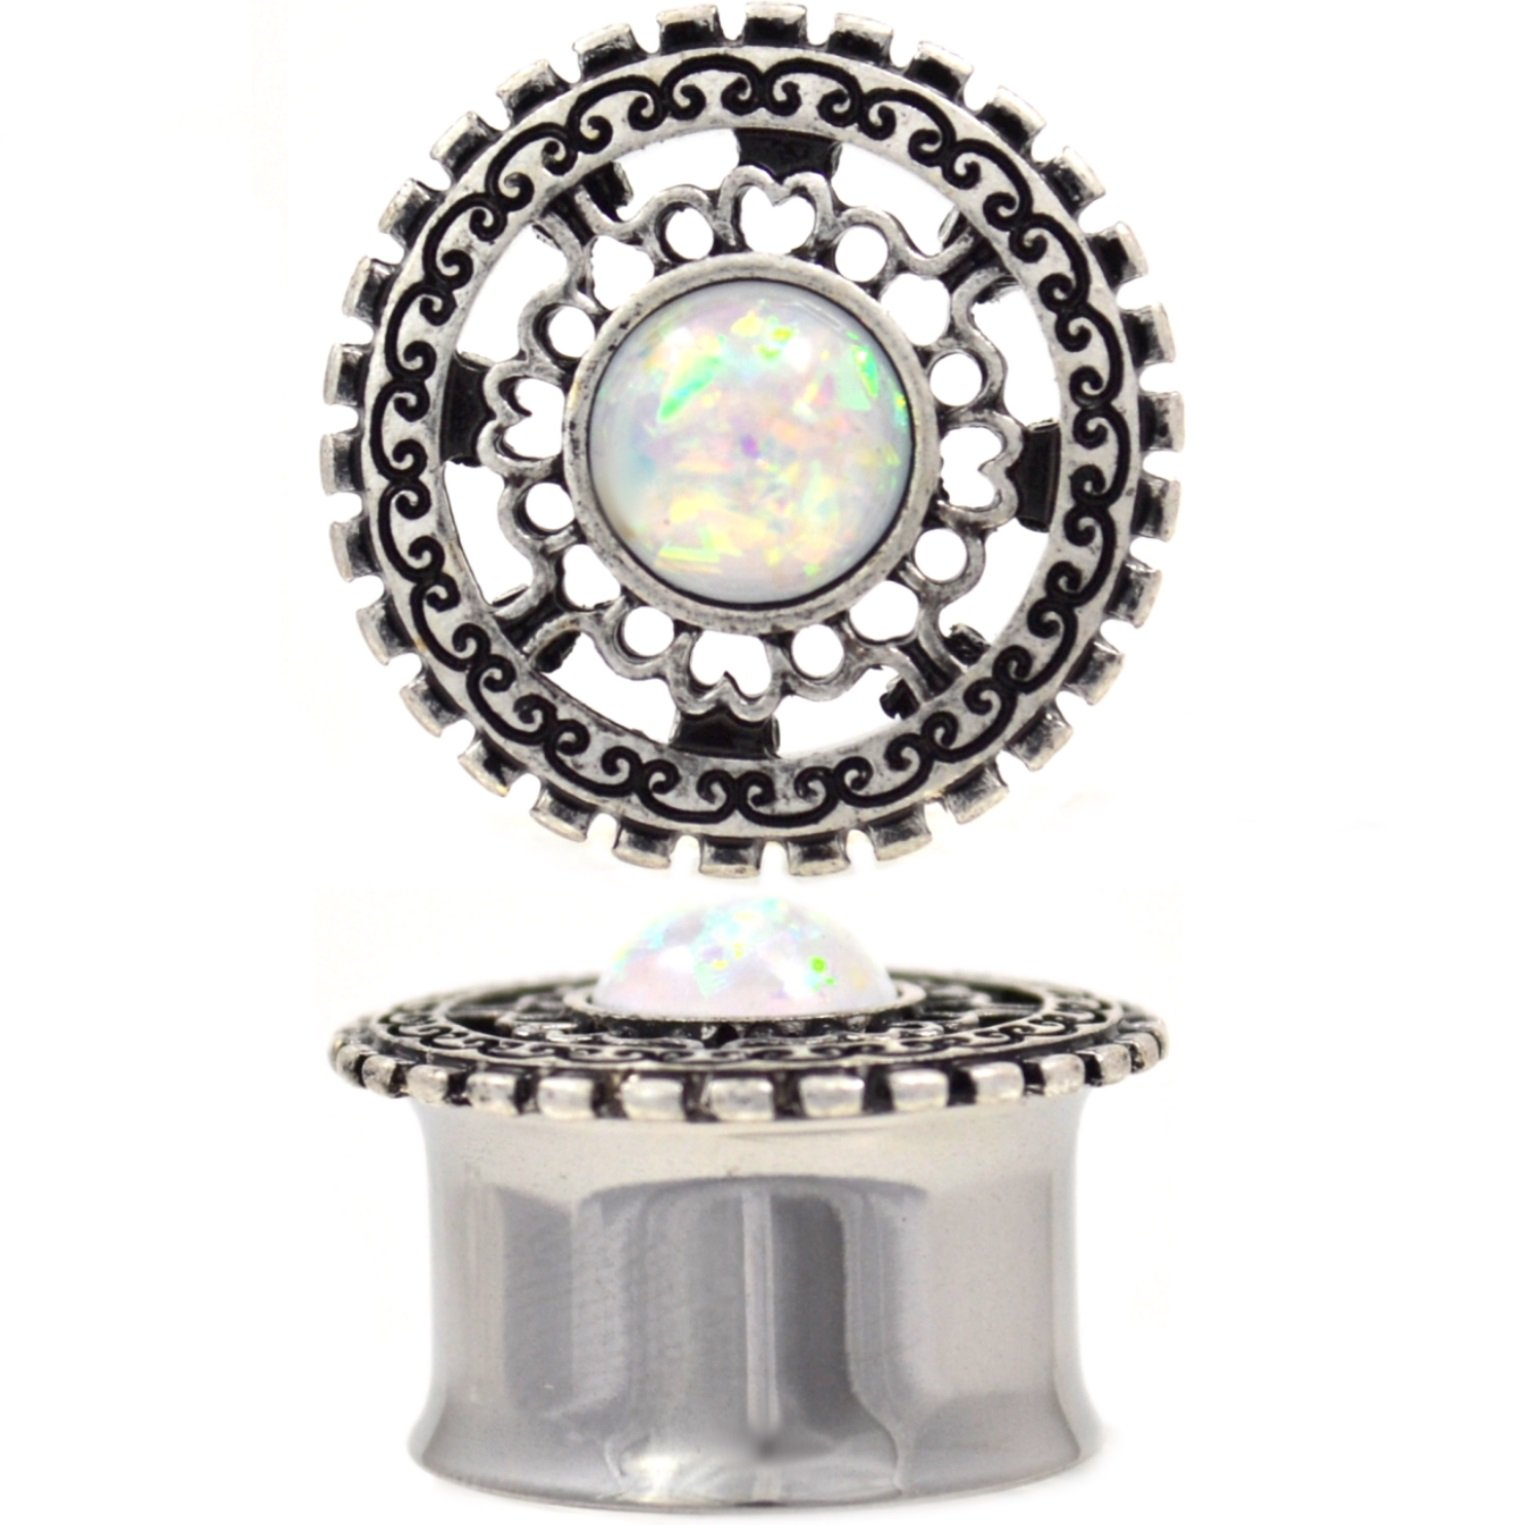 Pair of Tribal Filigree Opalescent White Resin Stone Tunnels Ear Plugs Gauges (Double Flared) - 3/4 Inch (19mm)